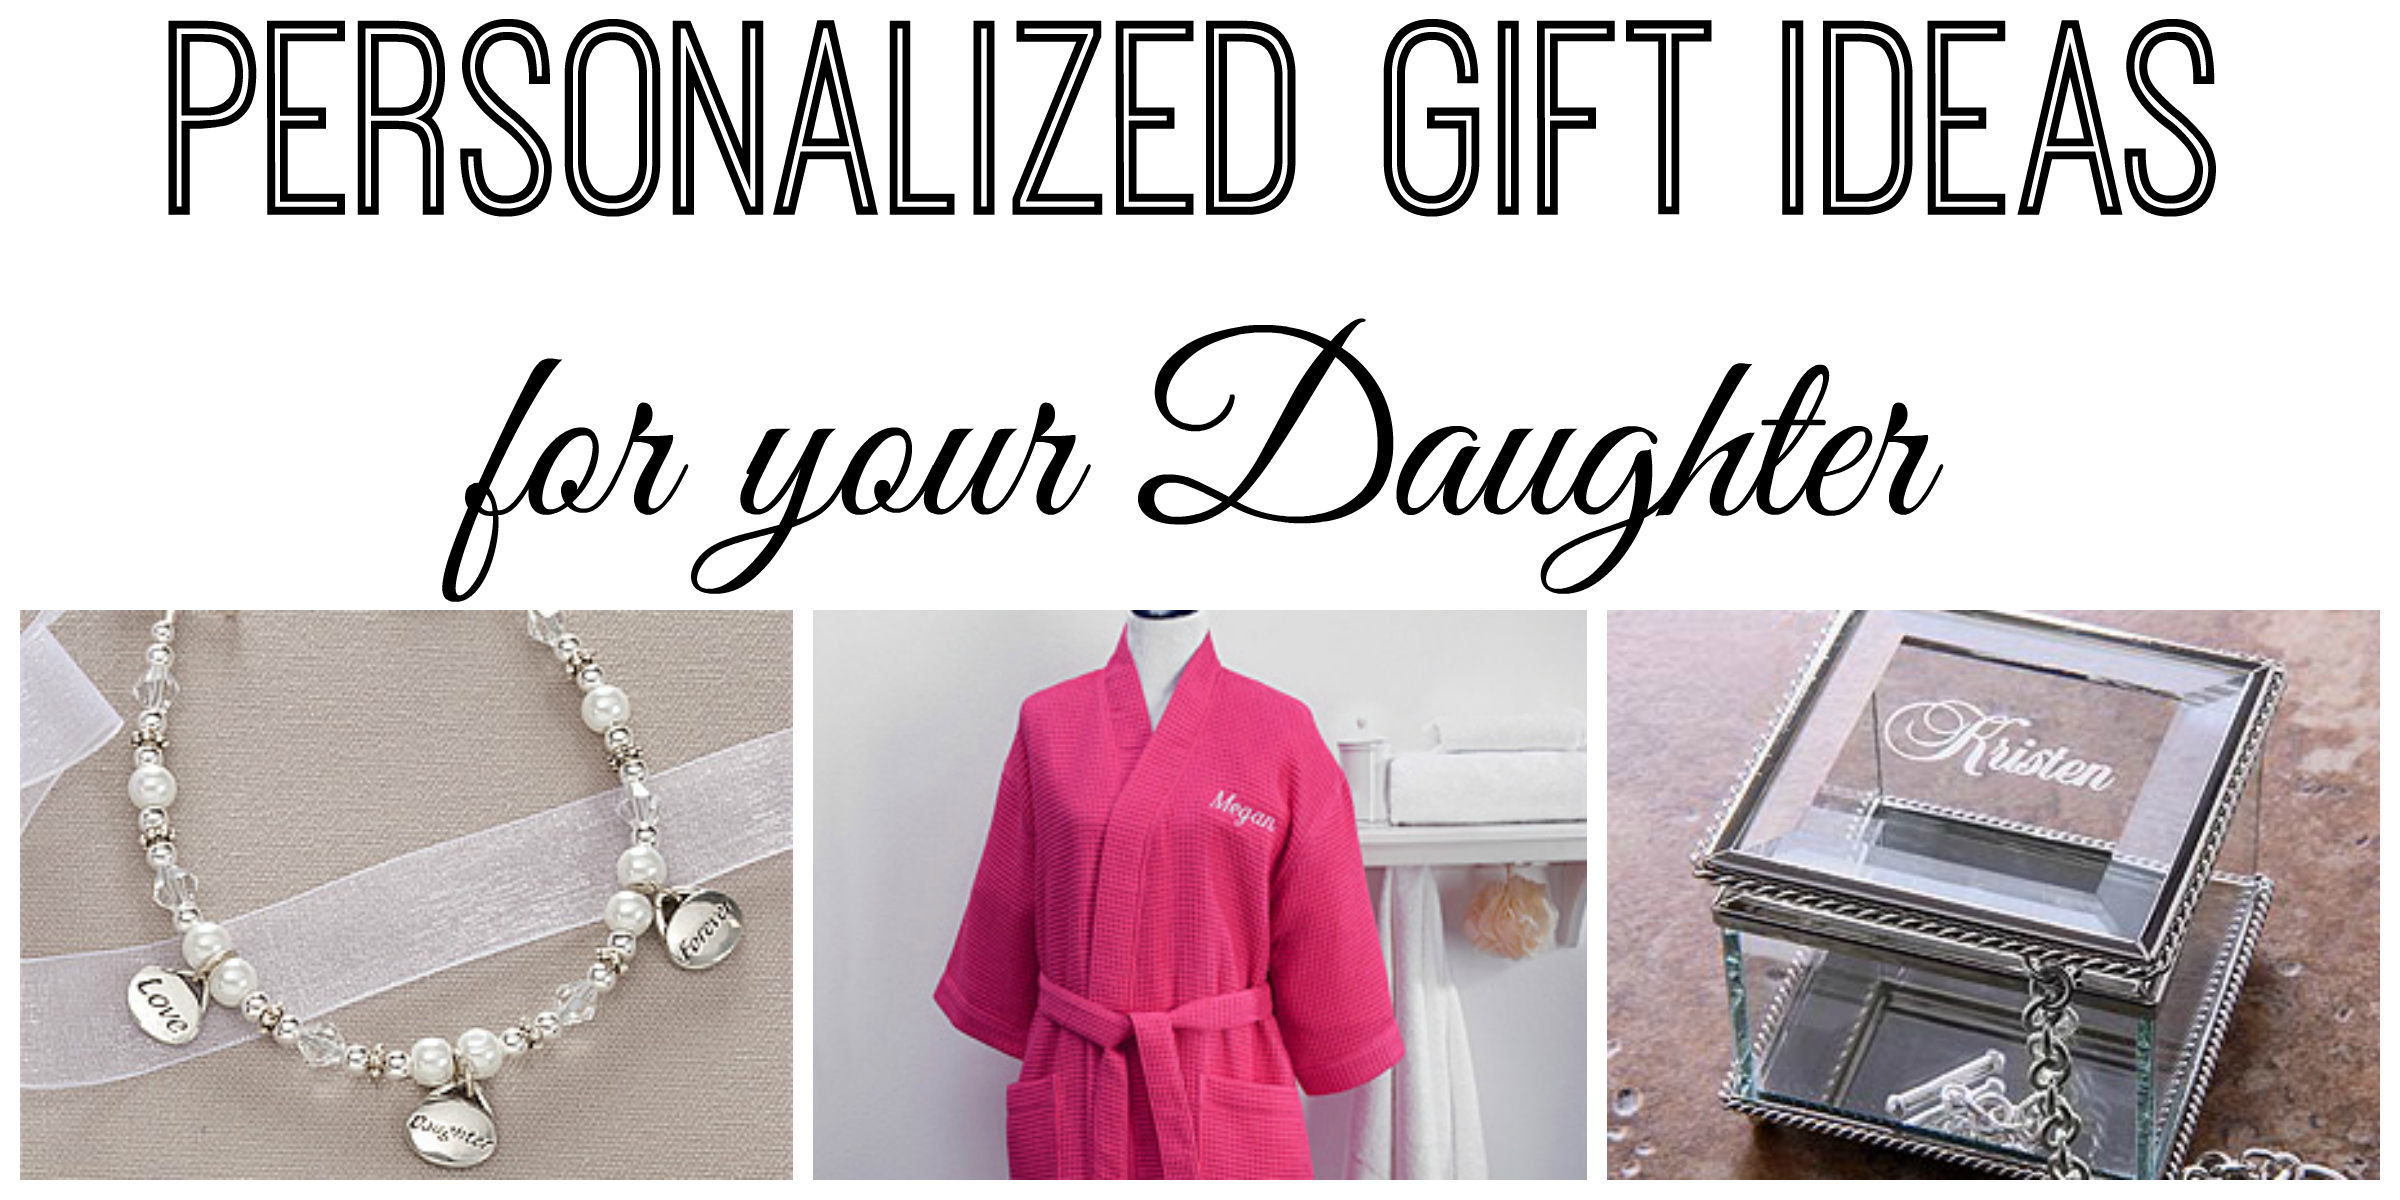 Personalized christmas gift ideas for your daughter personalized christmas gift ideas for your daughter personalization malls holiday gift guide negle Gallery